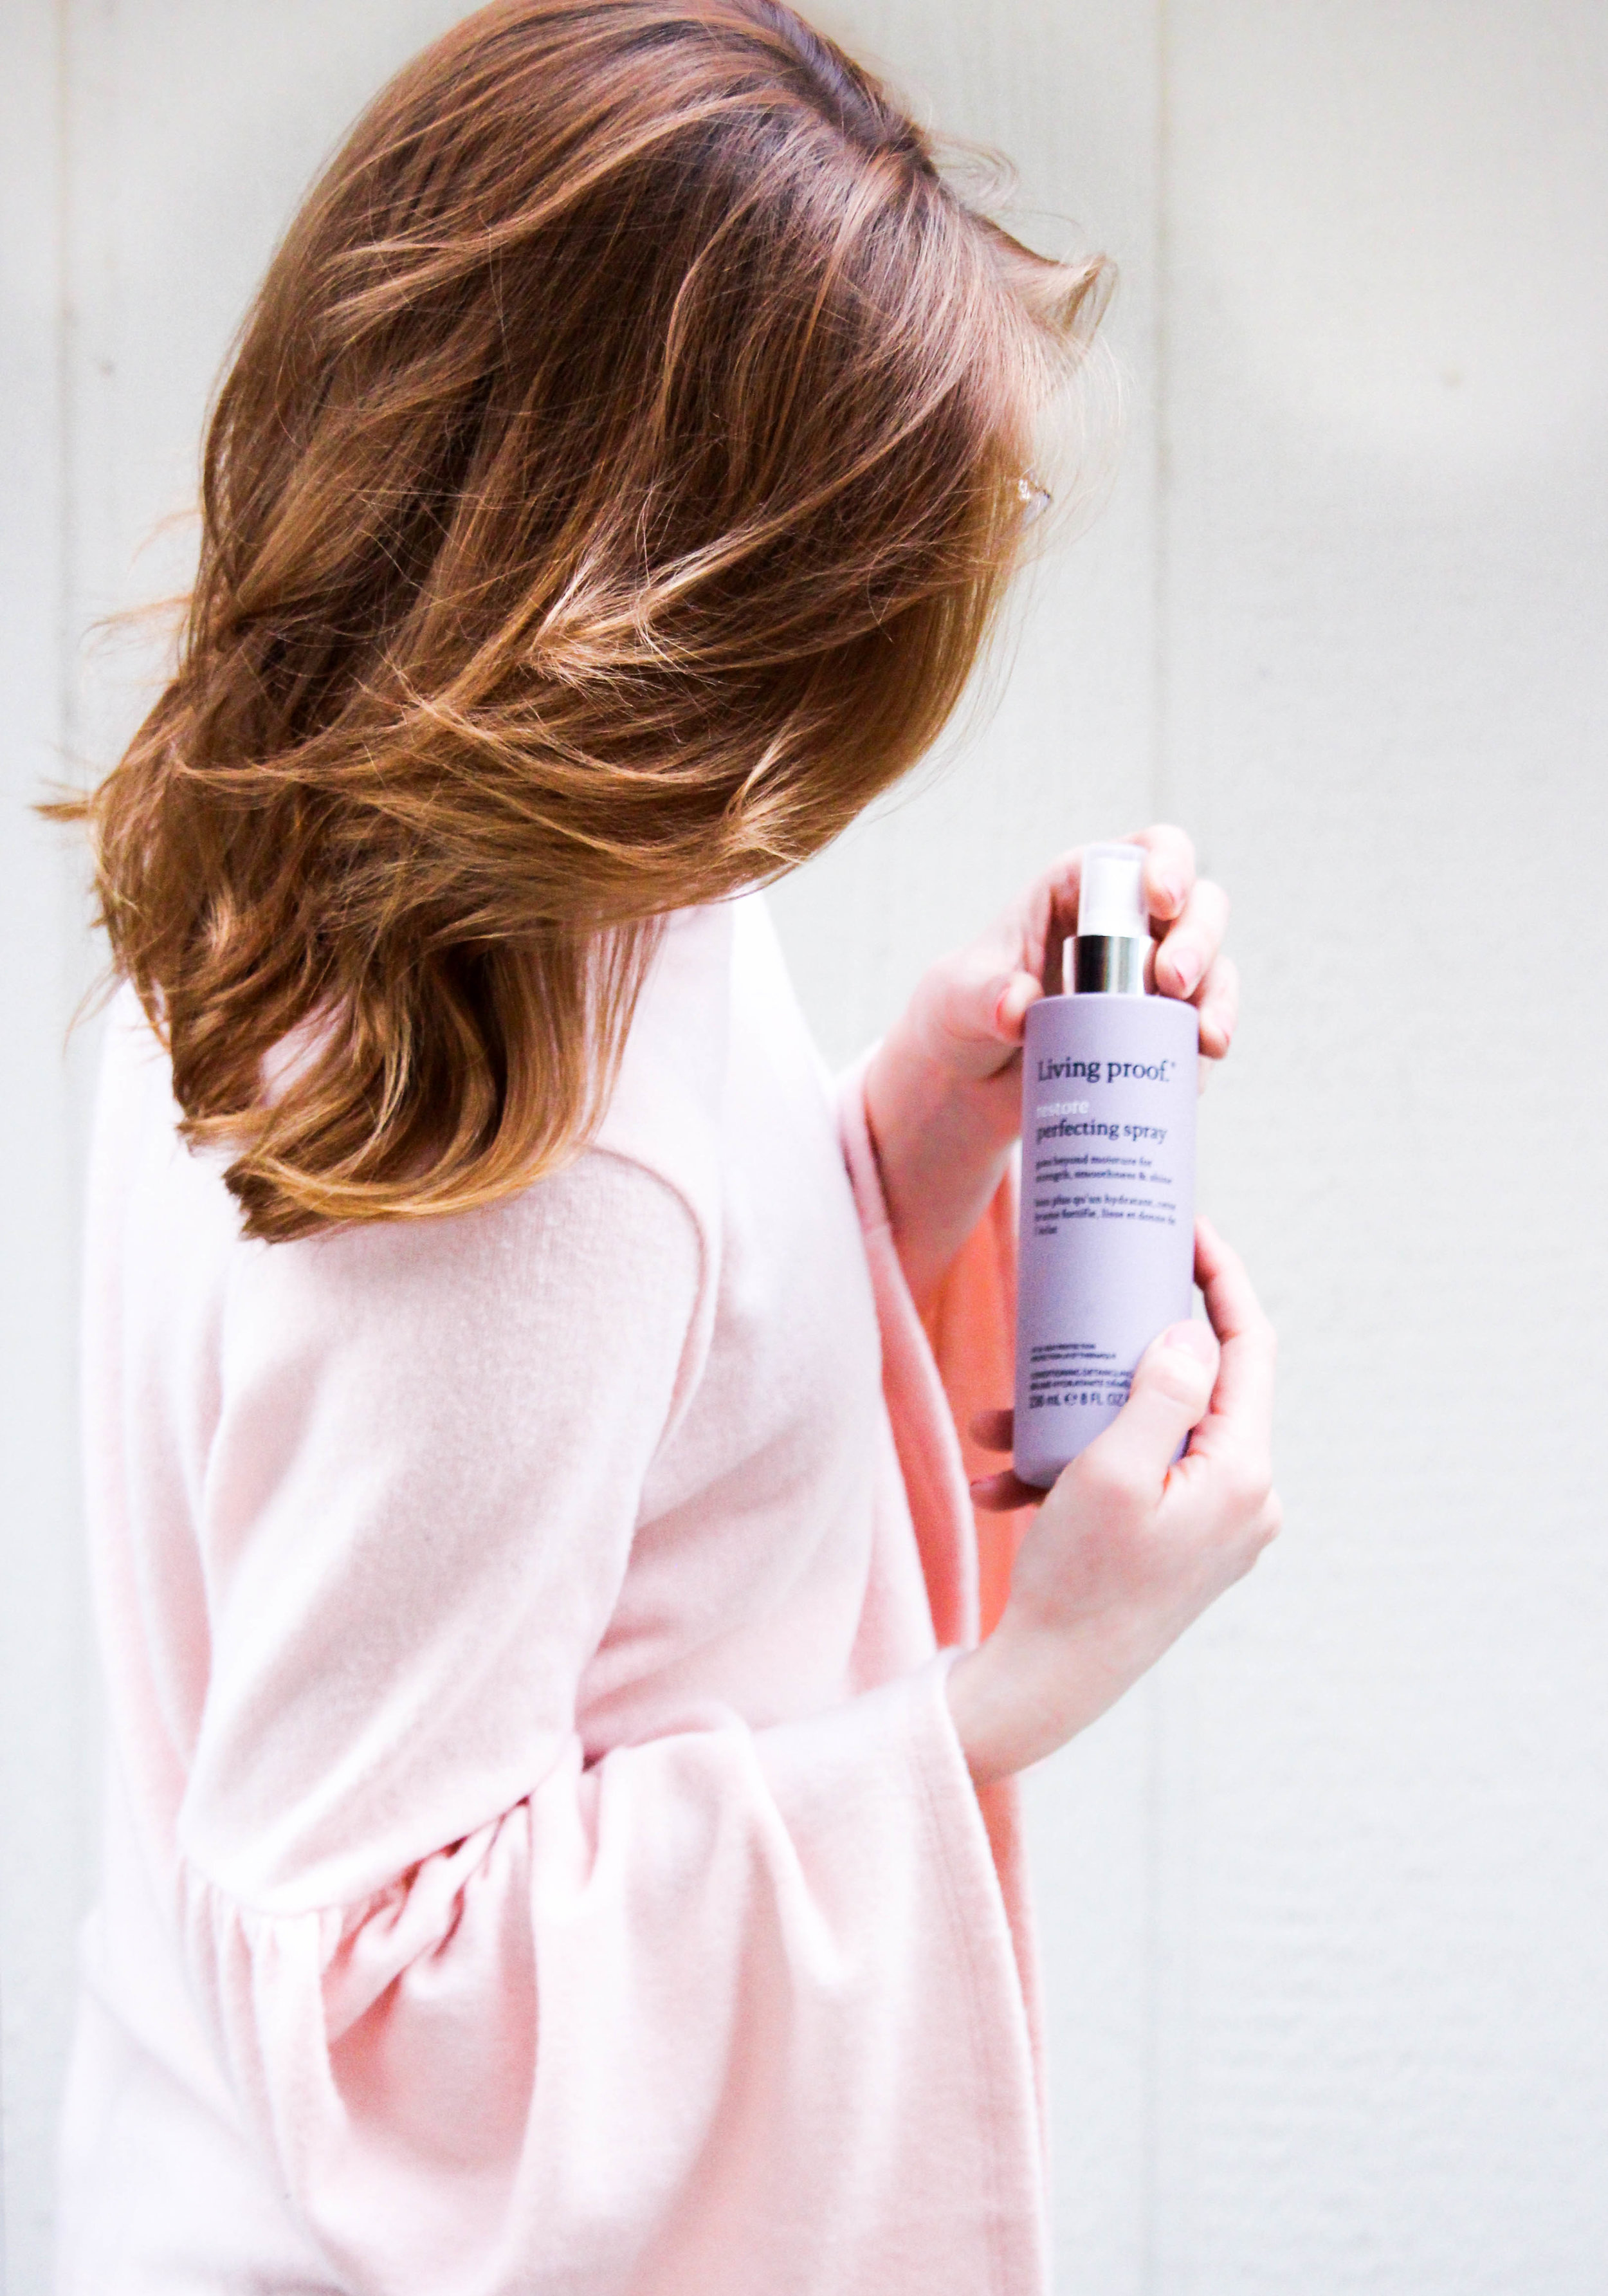 woman holding hair care product